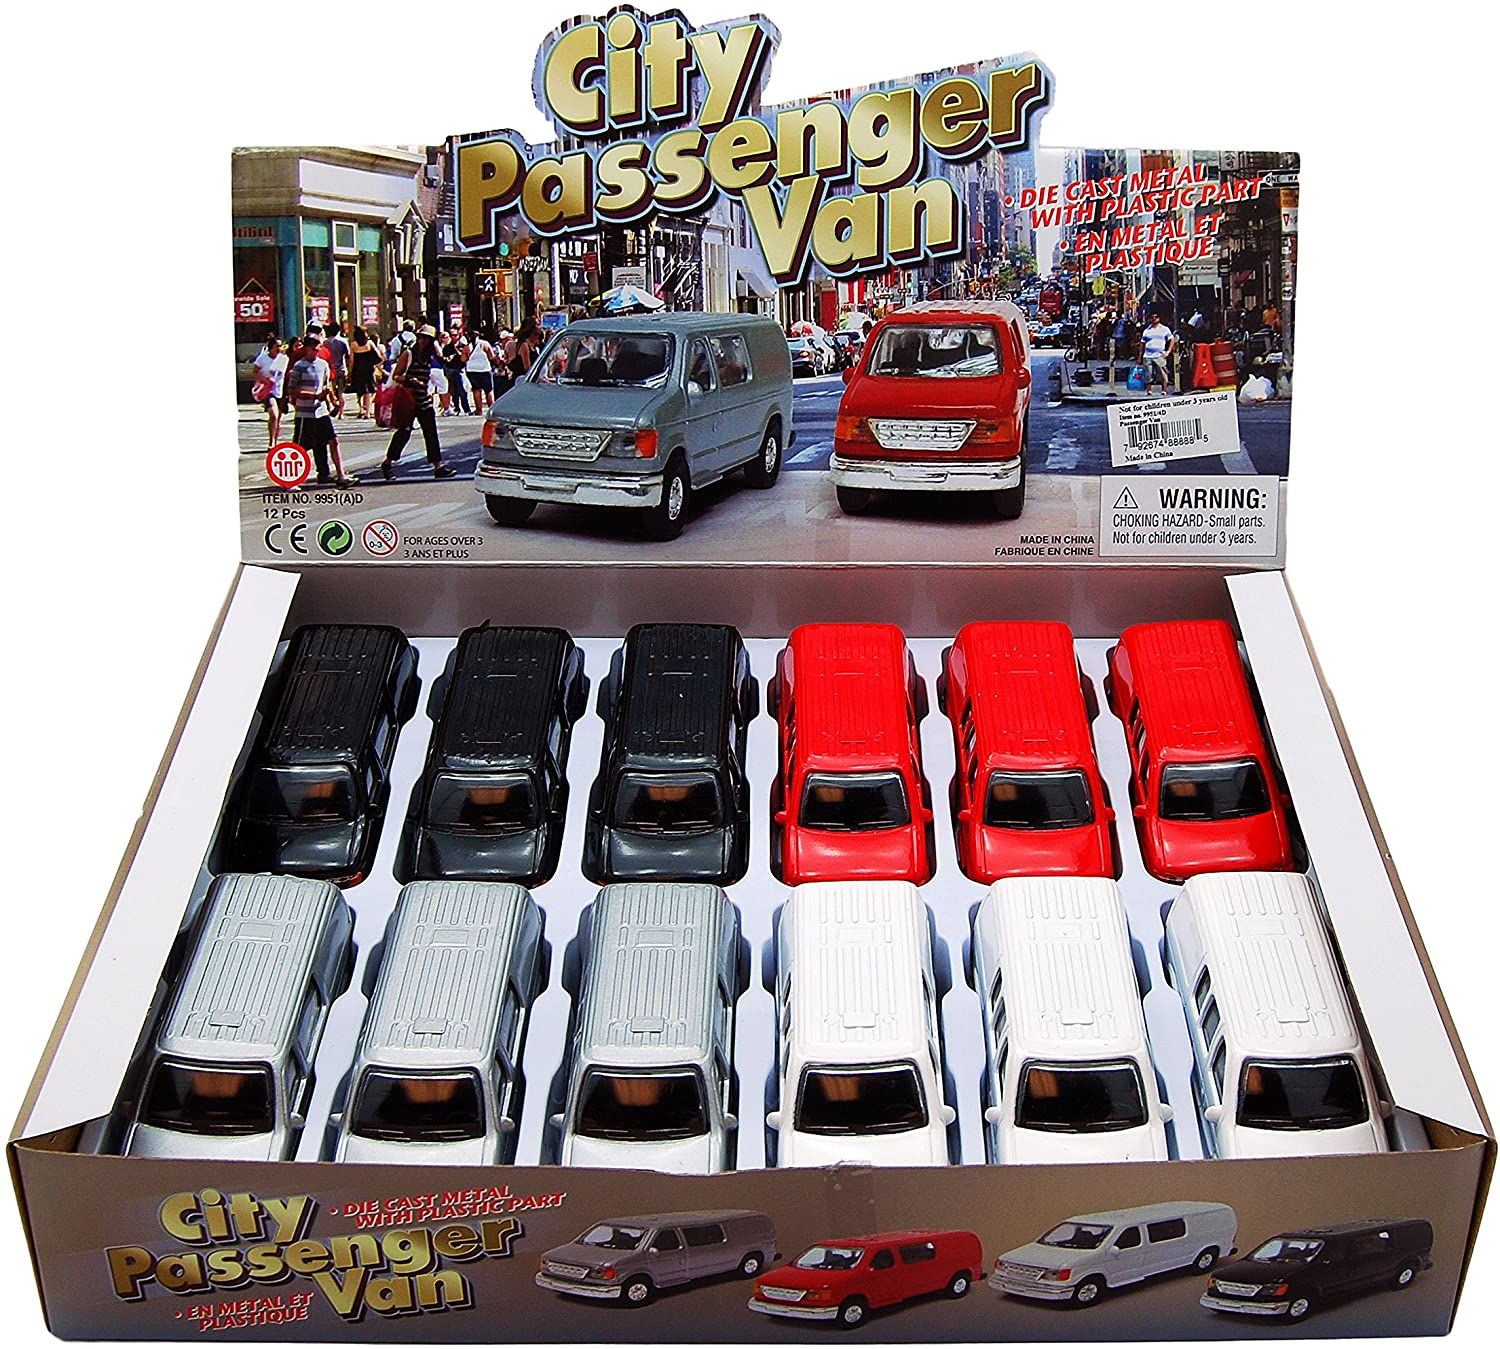 City Passenger Van Diecast Car Package - Box of 12 4.75 Inch Scale Diecast Model Cars, Assorted Colors